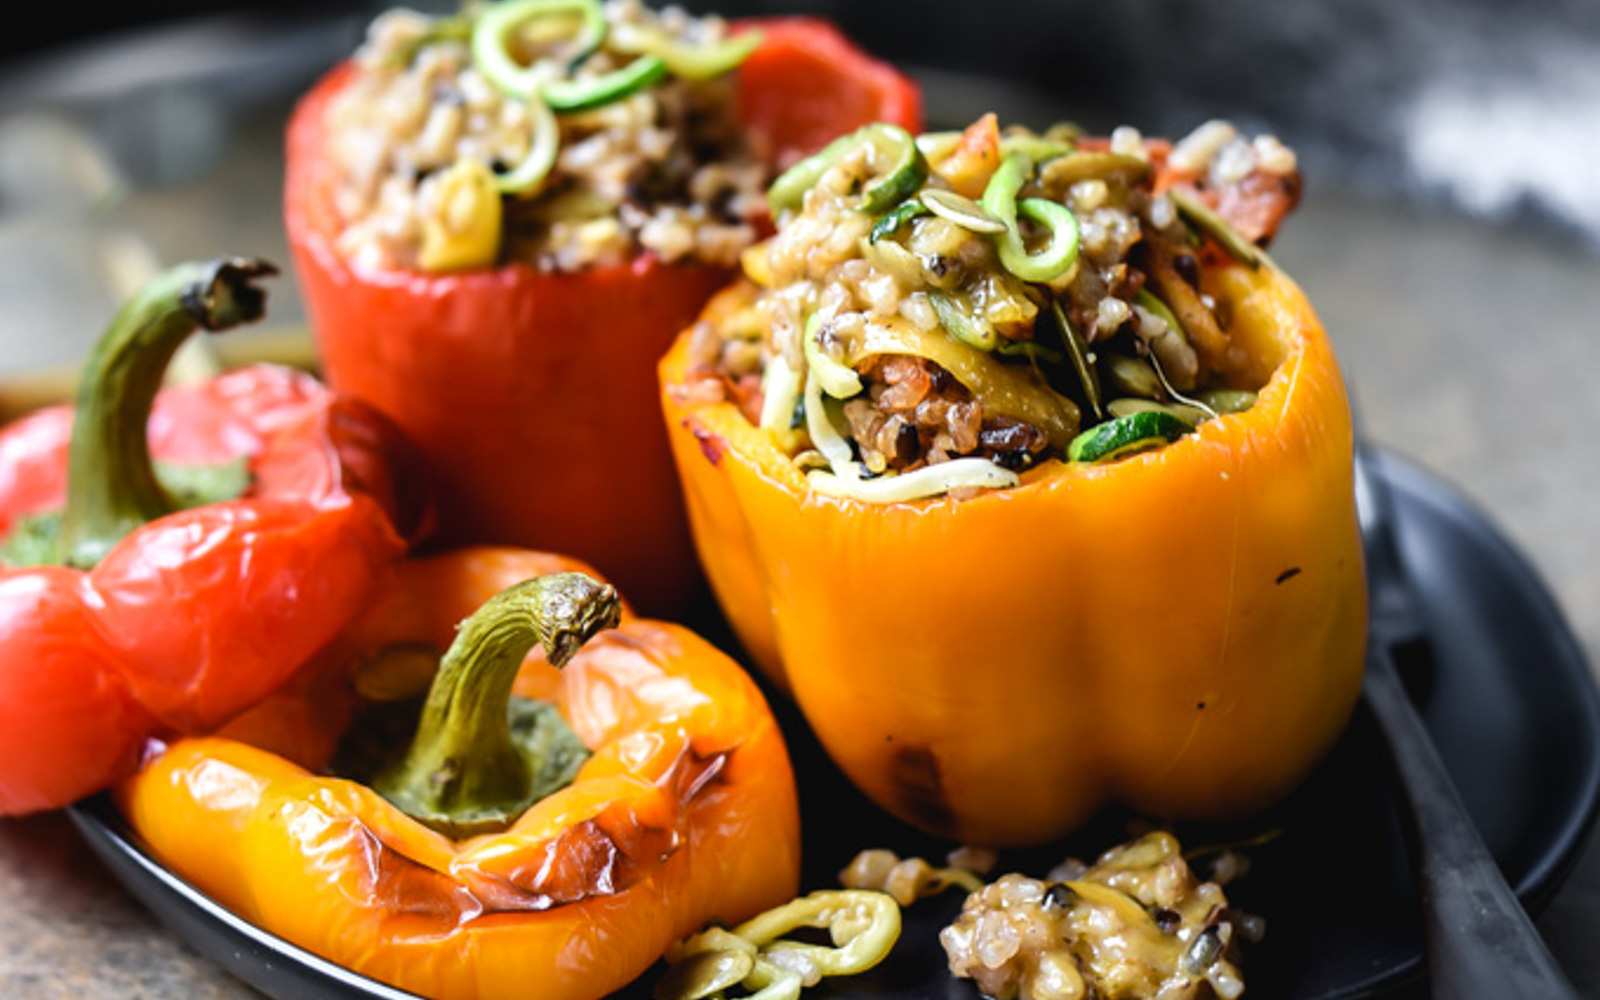 Vegan Gluten-Free Vegetables and Lemongrass Wild Rice Stuffed Peppers